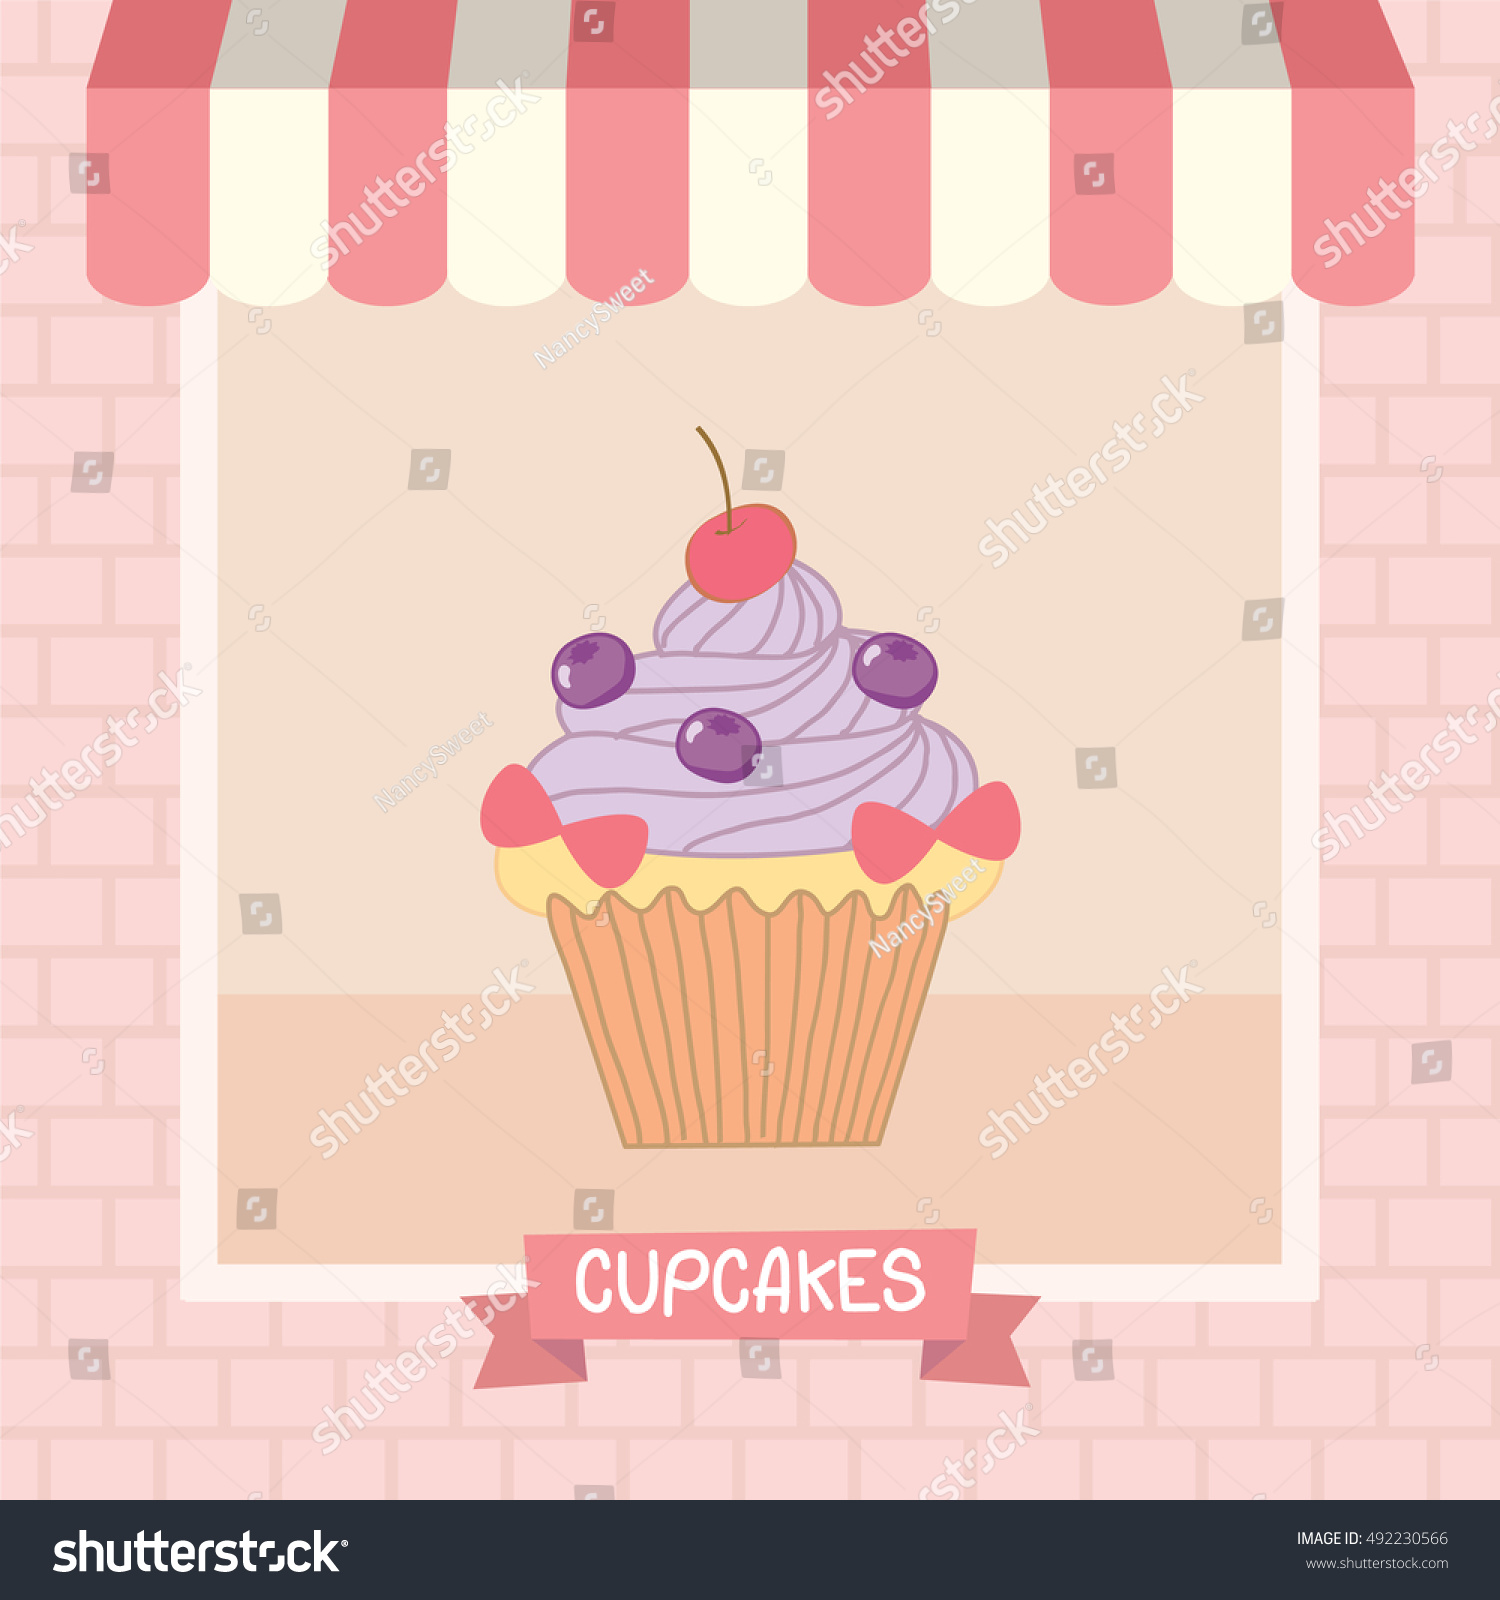 cupcakes cafe shop showcase decoration awning stock vector